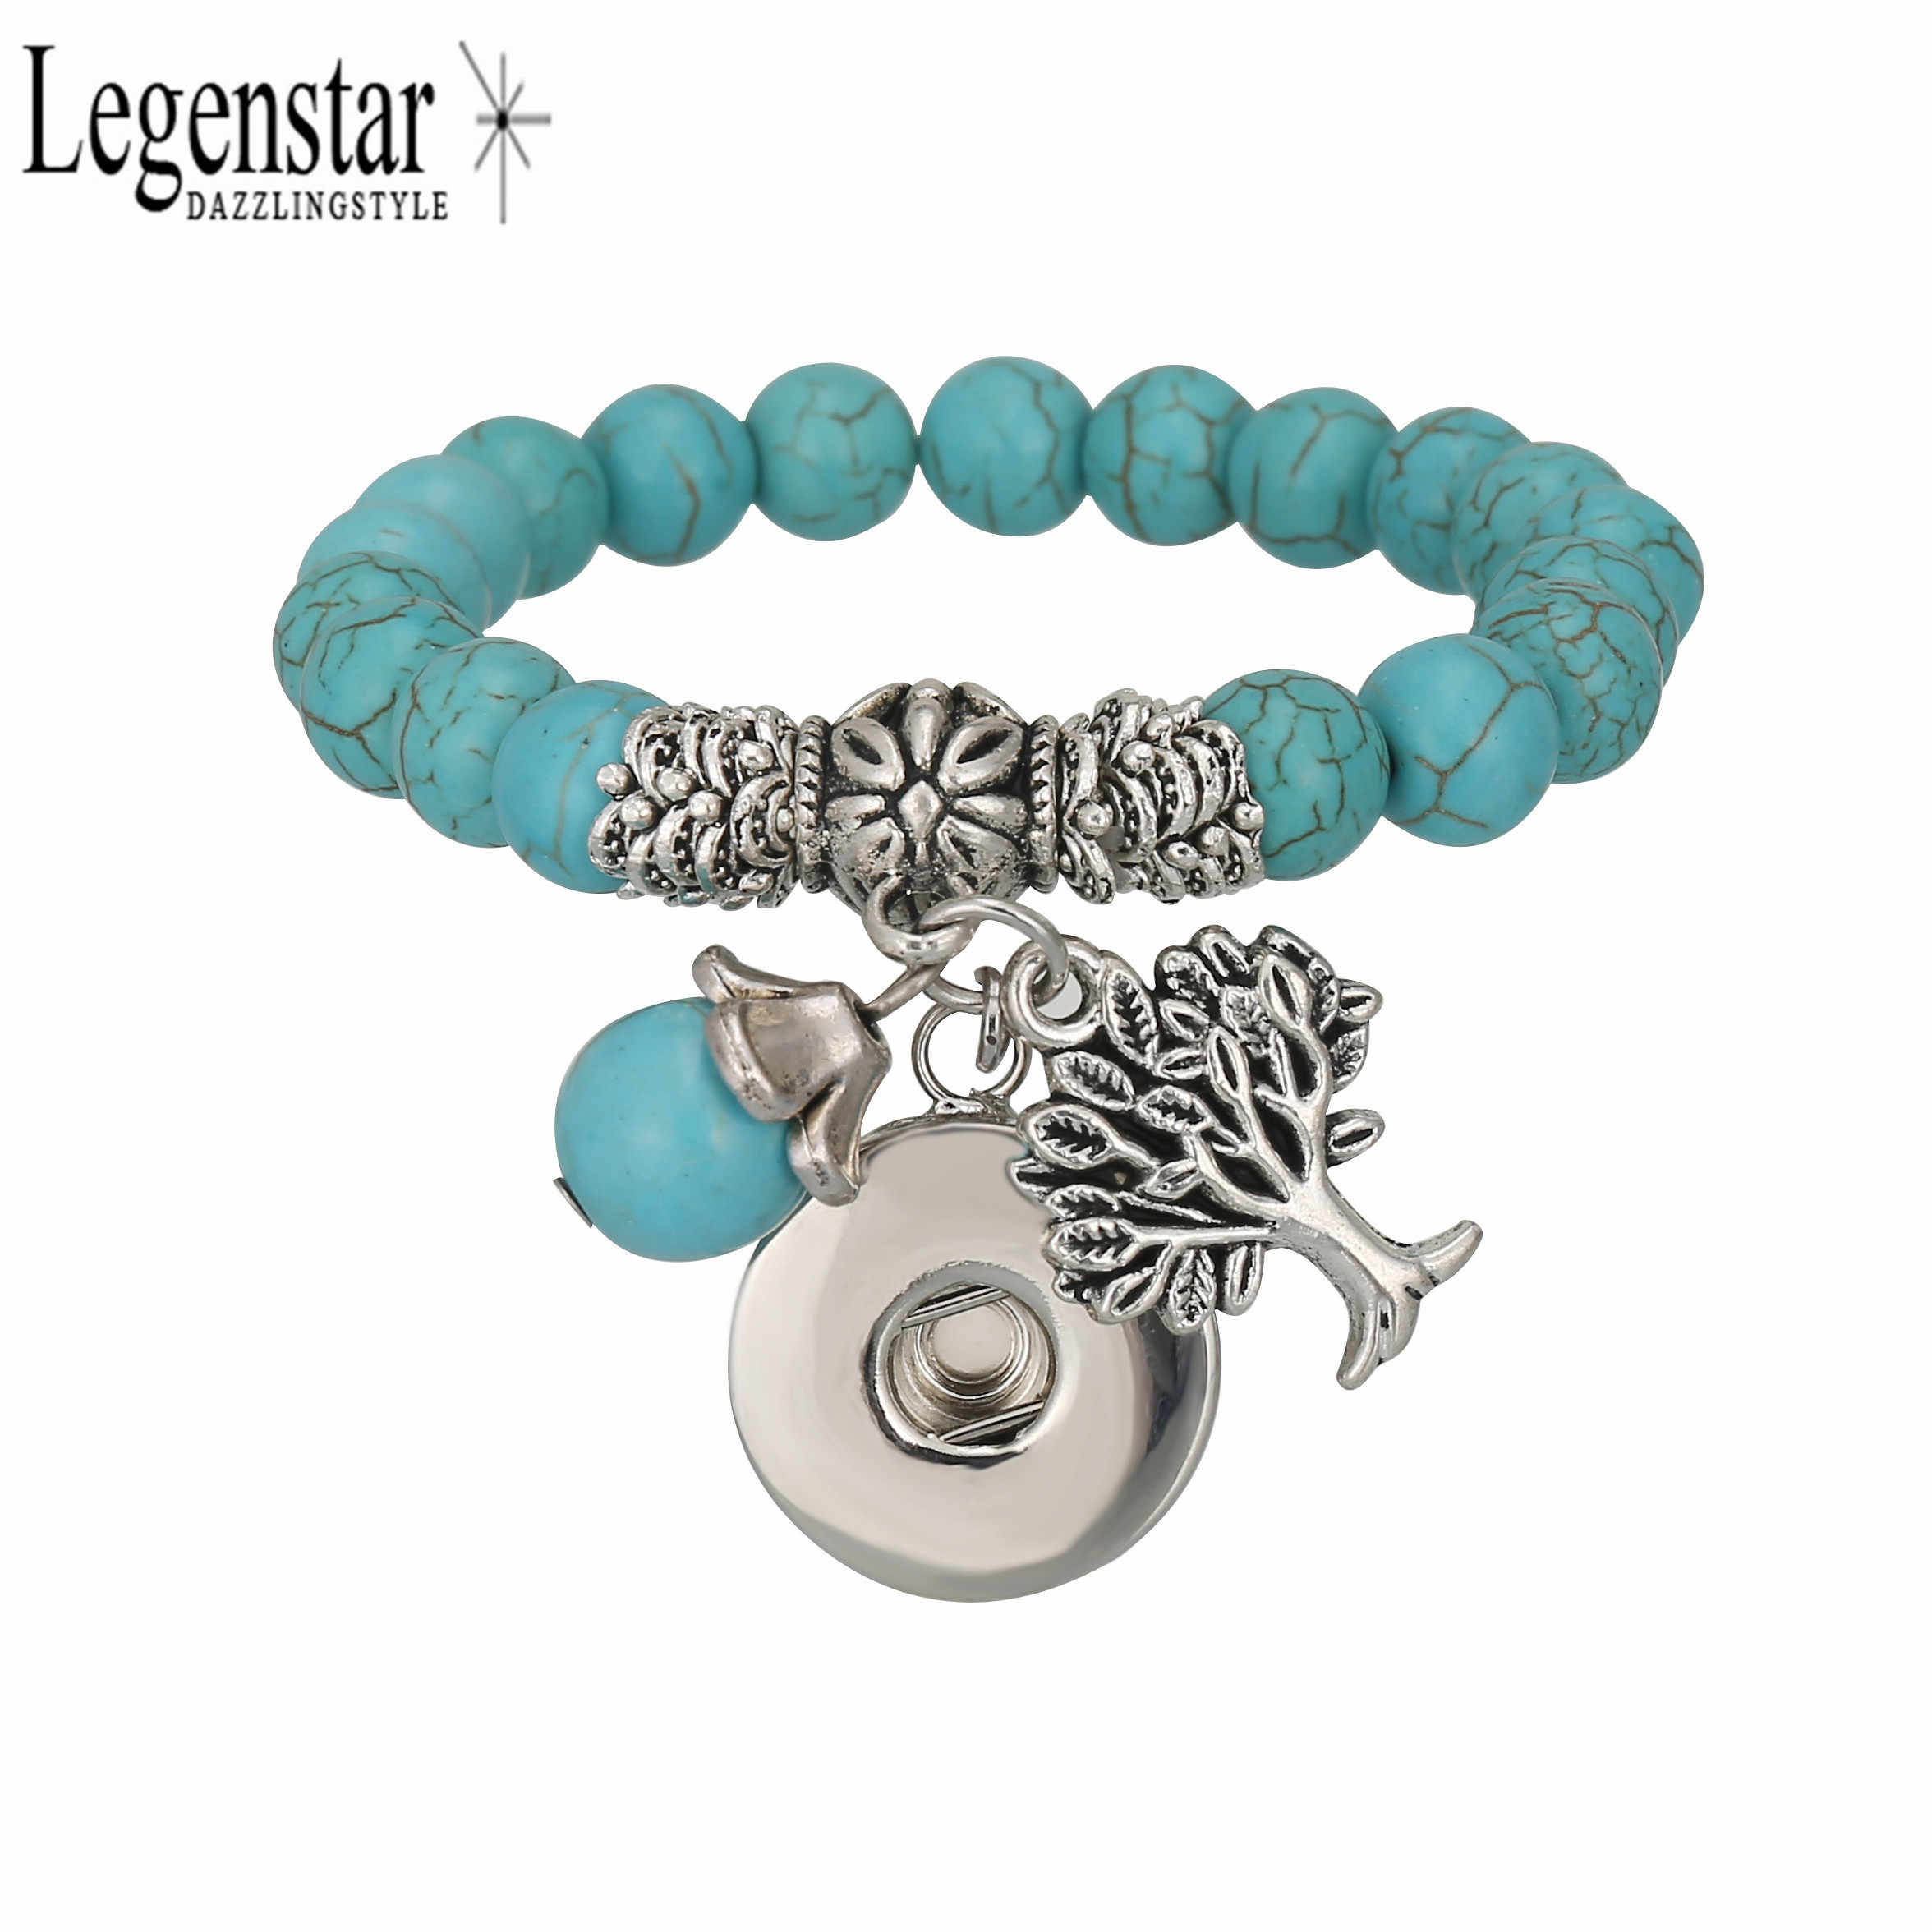 Legenstar 18mm Snap Beaded Bracelet azul piedras de color natural Charm Bracelet Life Tree Pendant joyería intercambiable para mujer